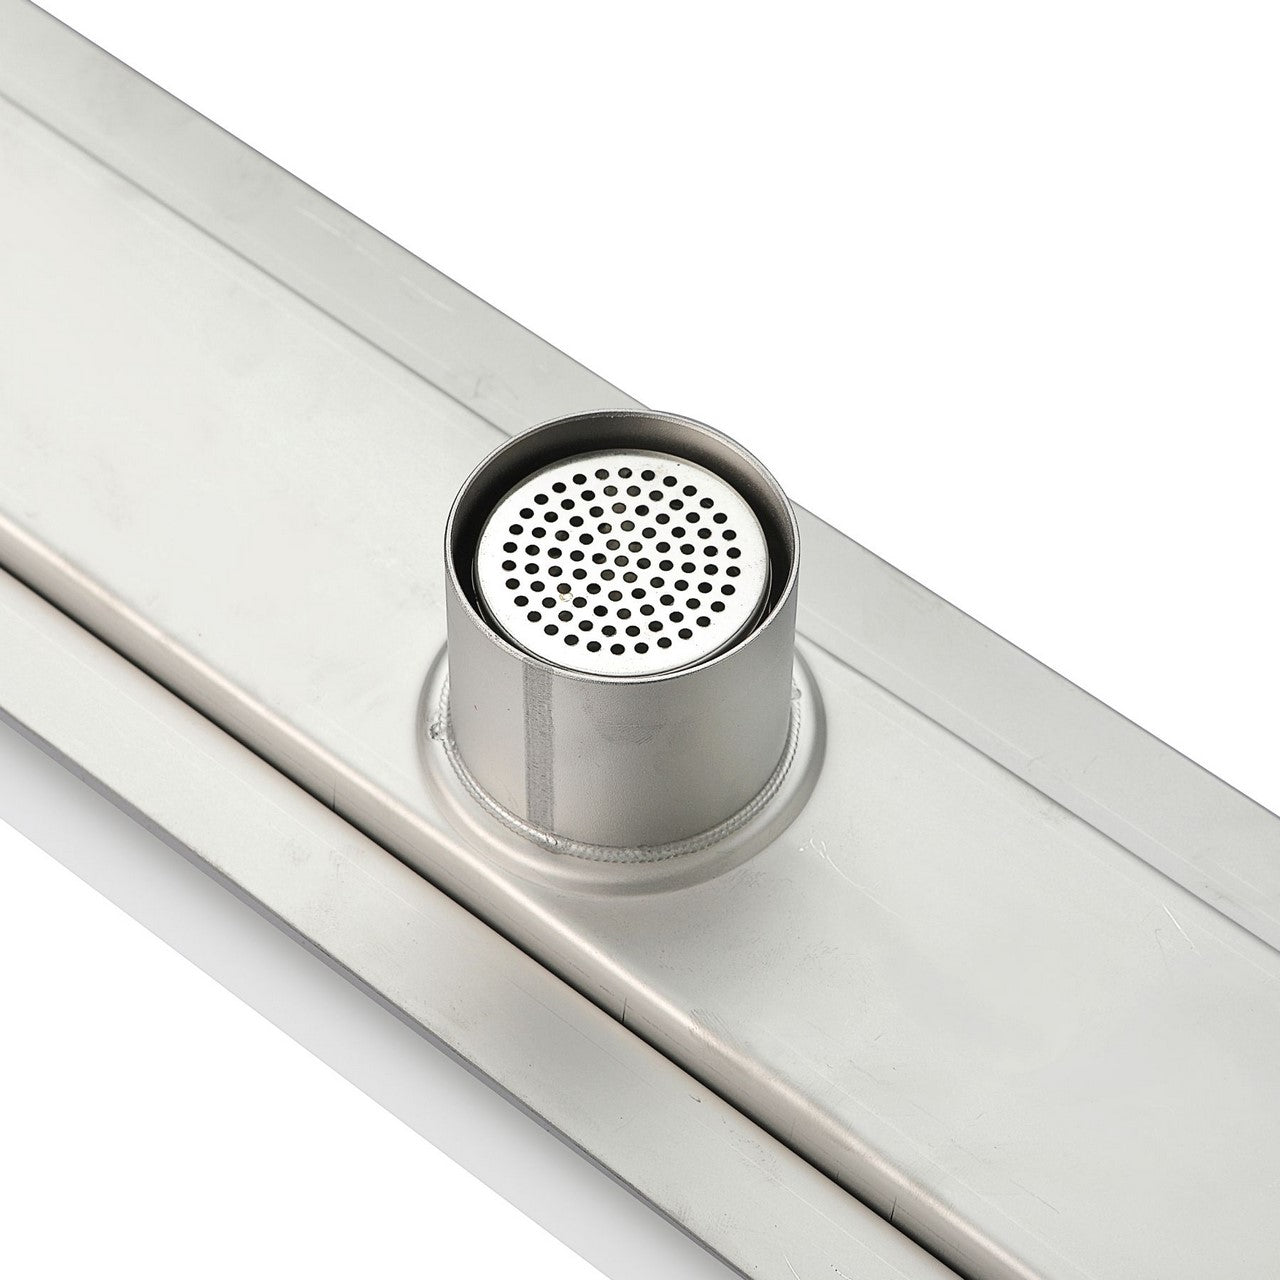 LINEAR GRATE- 36″ Stainless Steel Linear Shower Drain - Vanity Sale